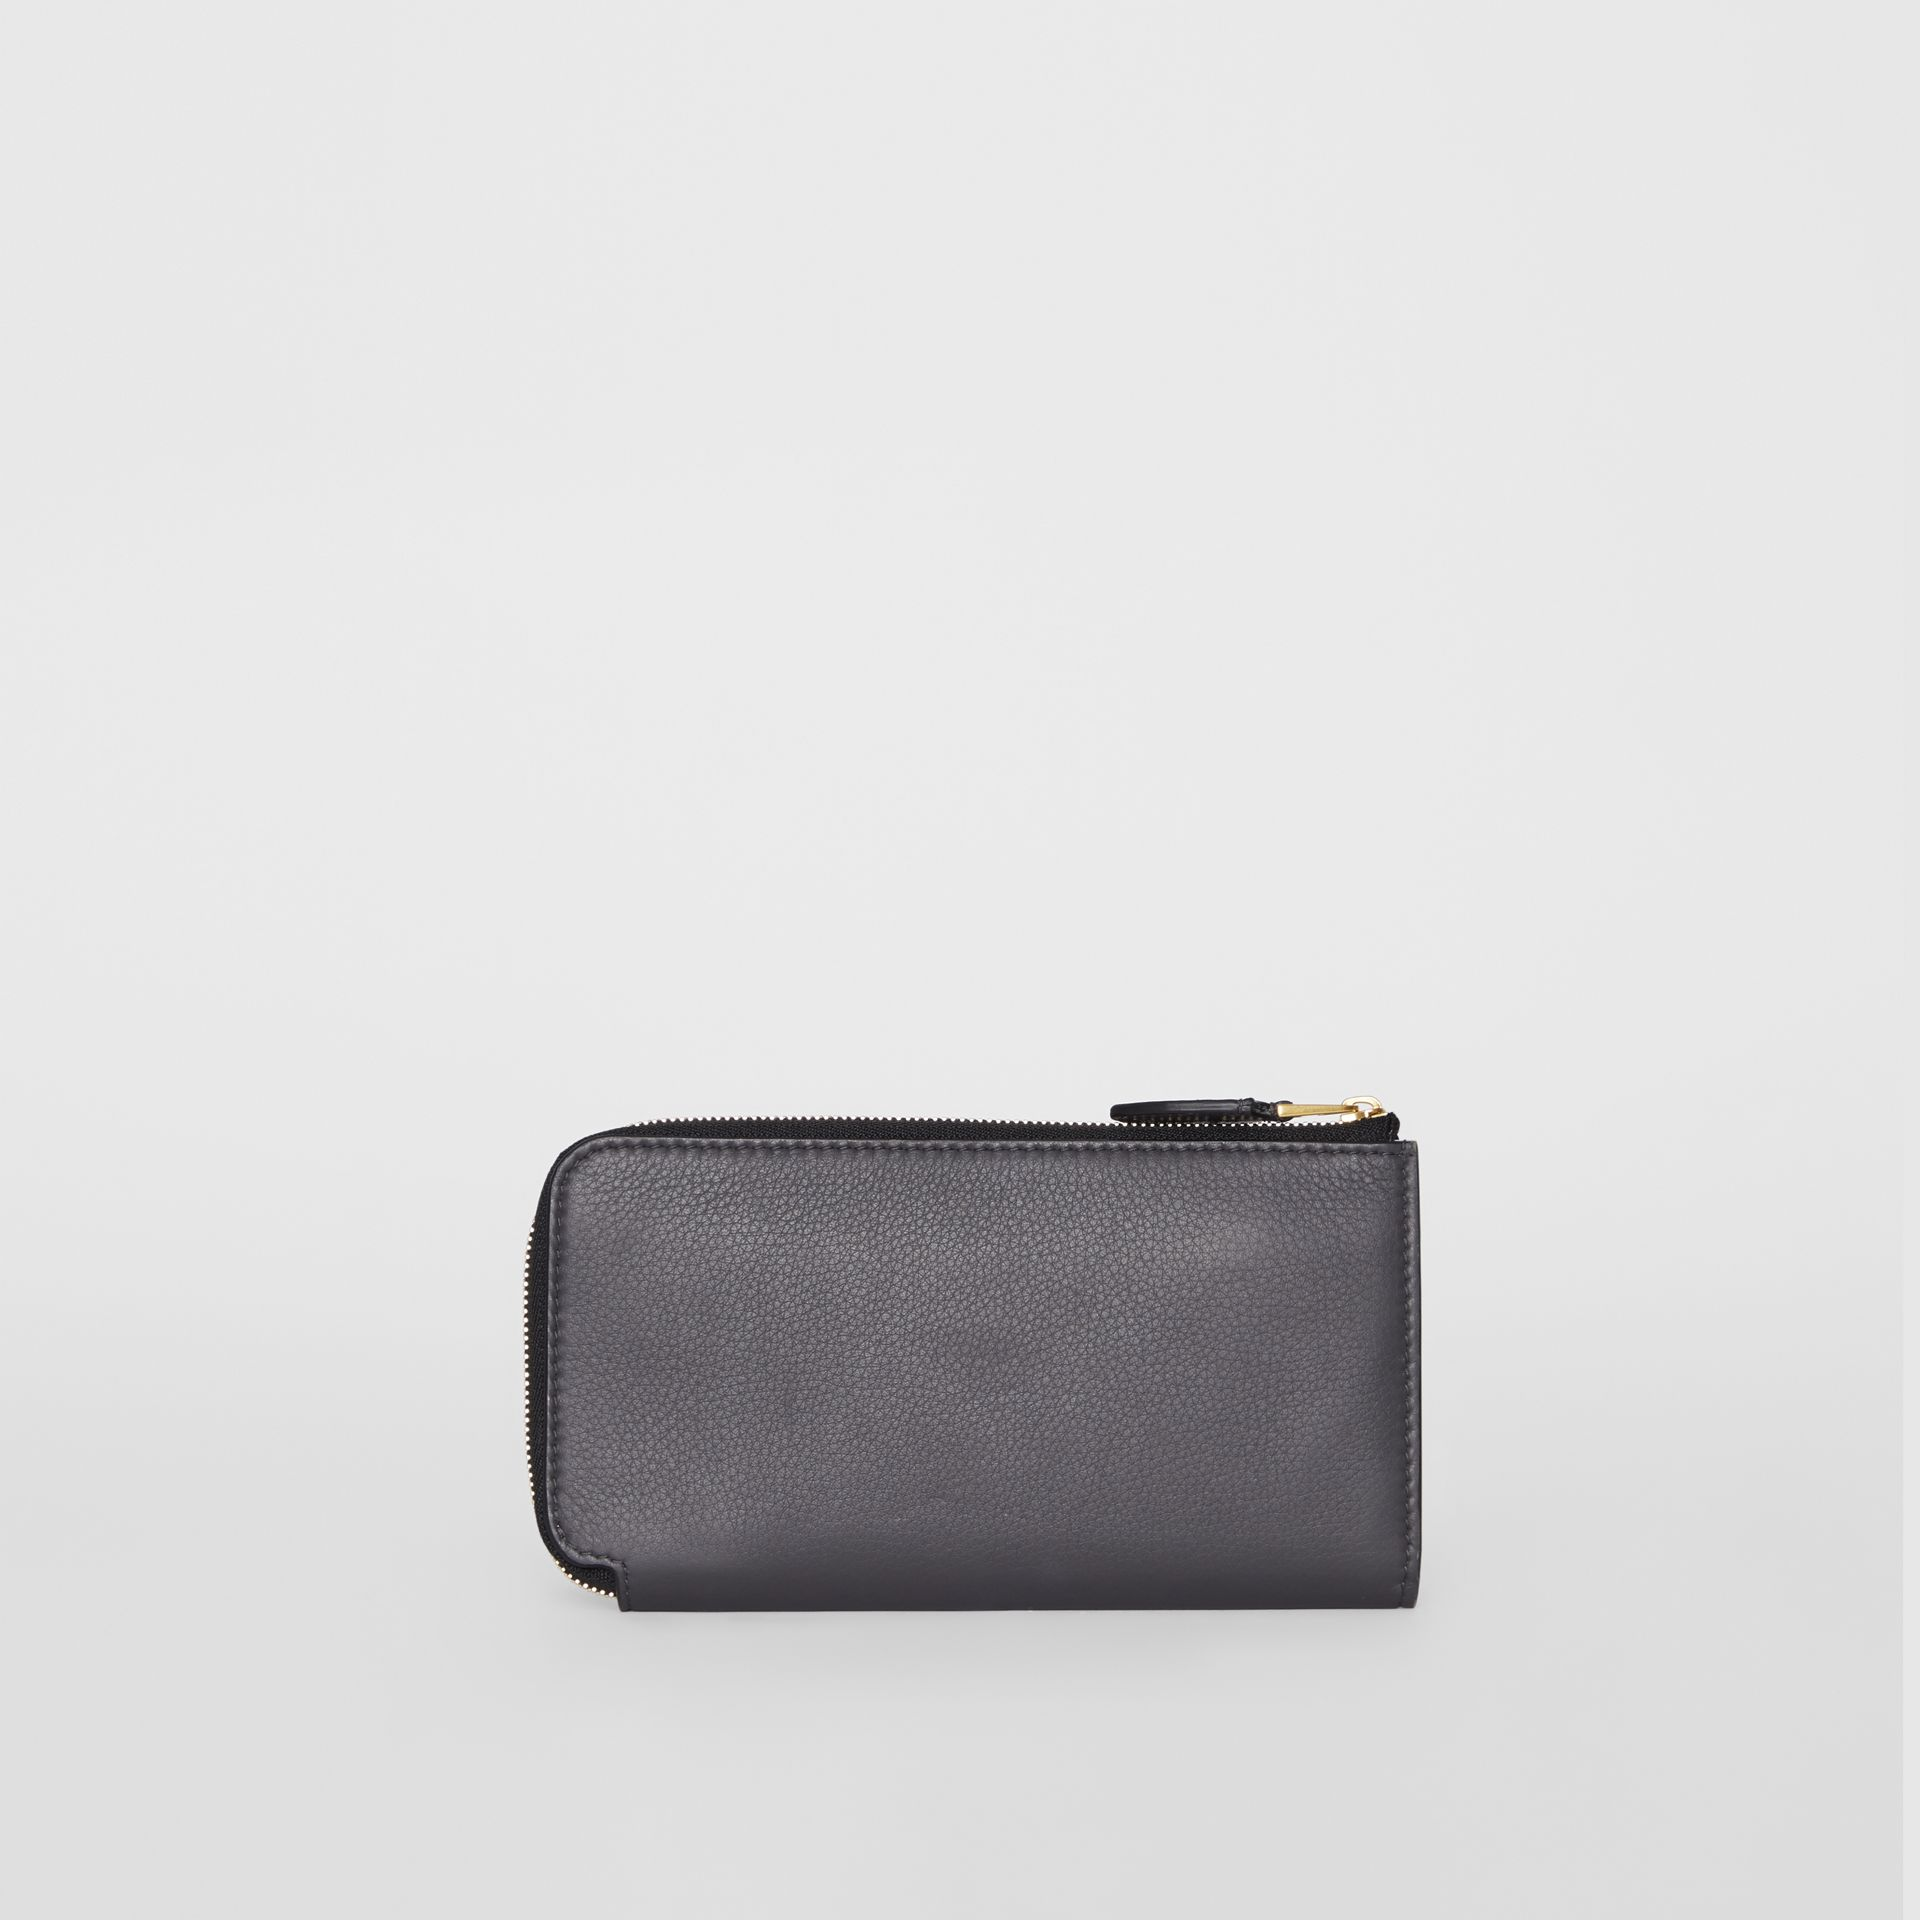 Two-tone Leather Ziparound Wallet and Coin Case in Charcoal Grey - Women | Burberry - gallery image 6